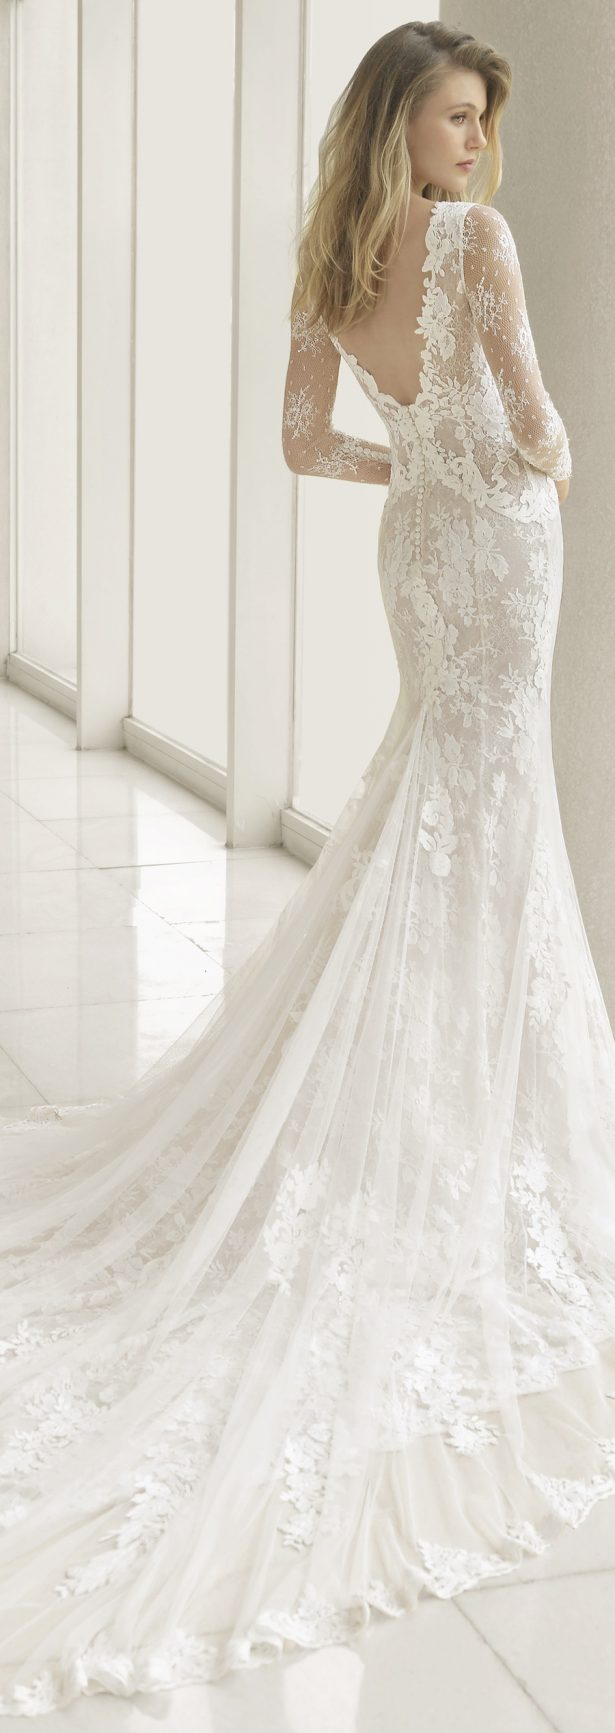 Winter Wedding Dress.Stunning Winter Wedding Dresses Belle The Magazine